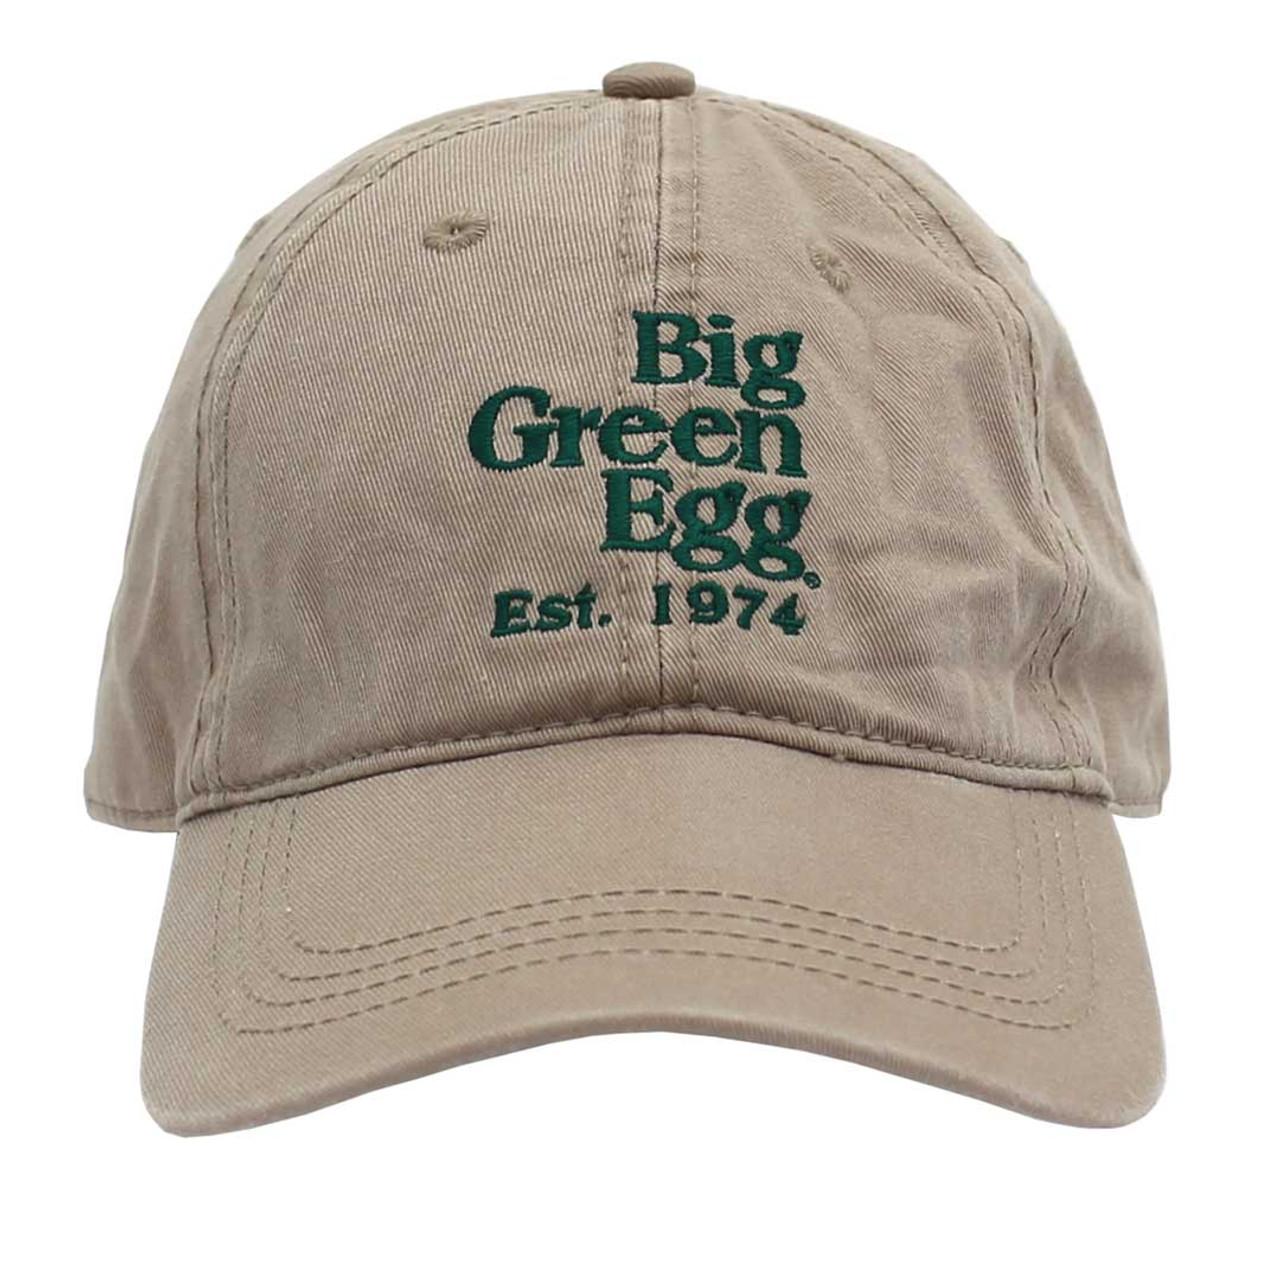 Big Green Egg Relaxed Est. 1974 Cap – Khaki